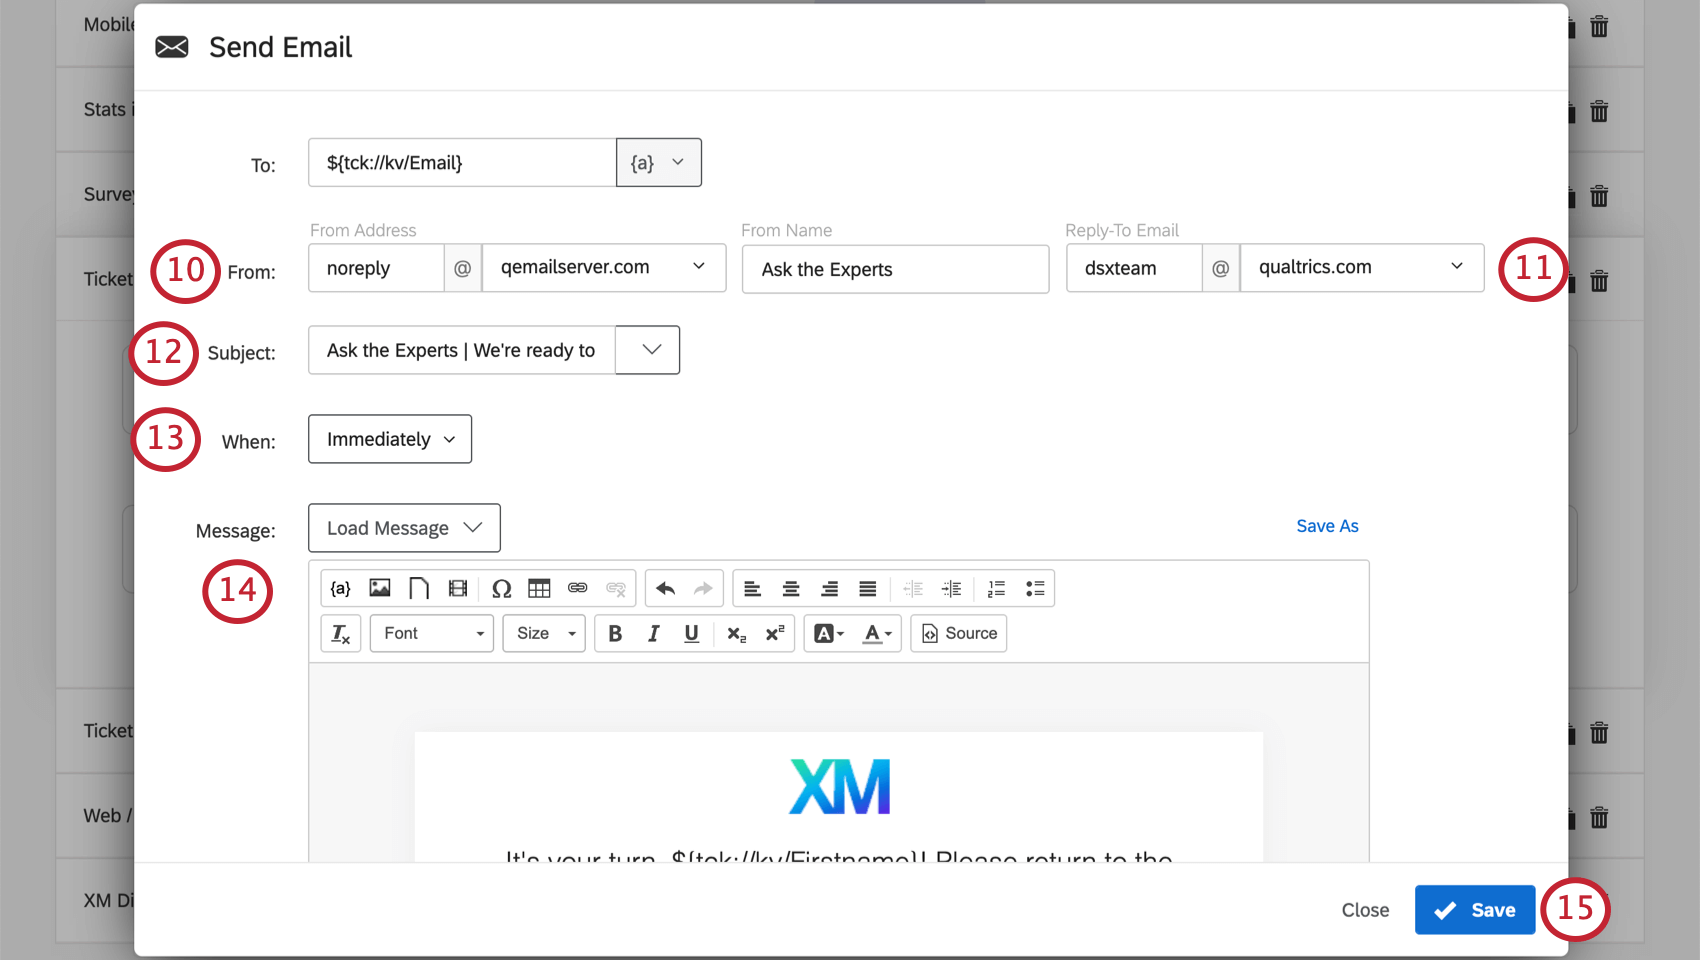 Image of an email task filled out as described